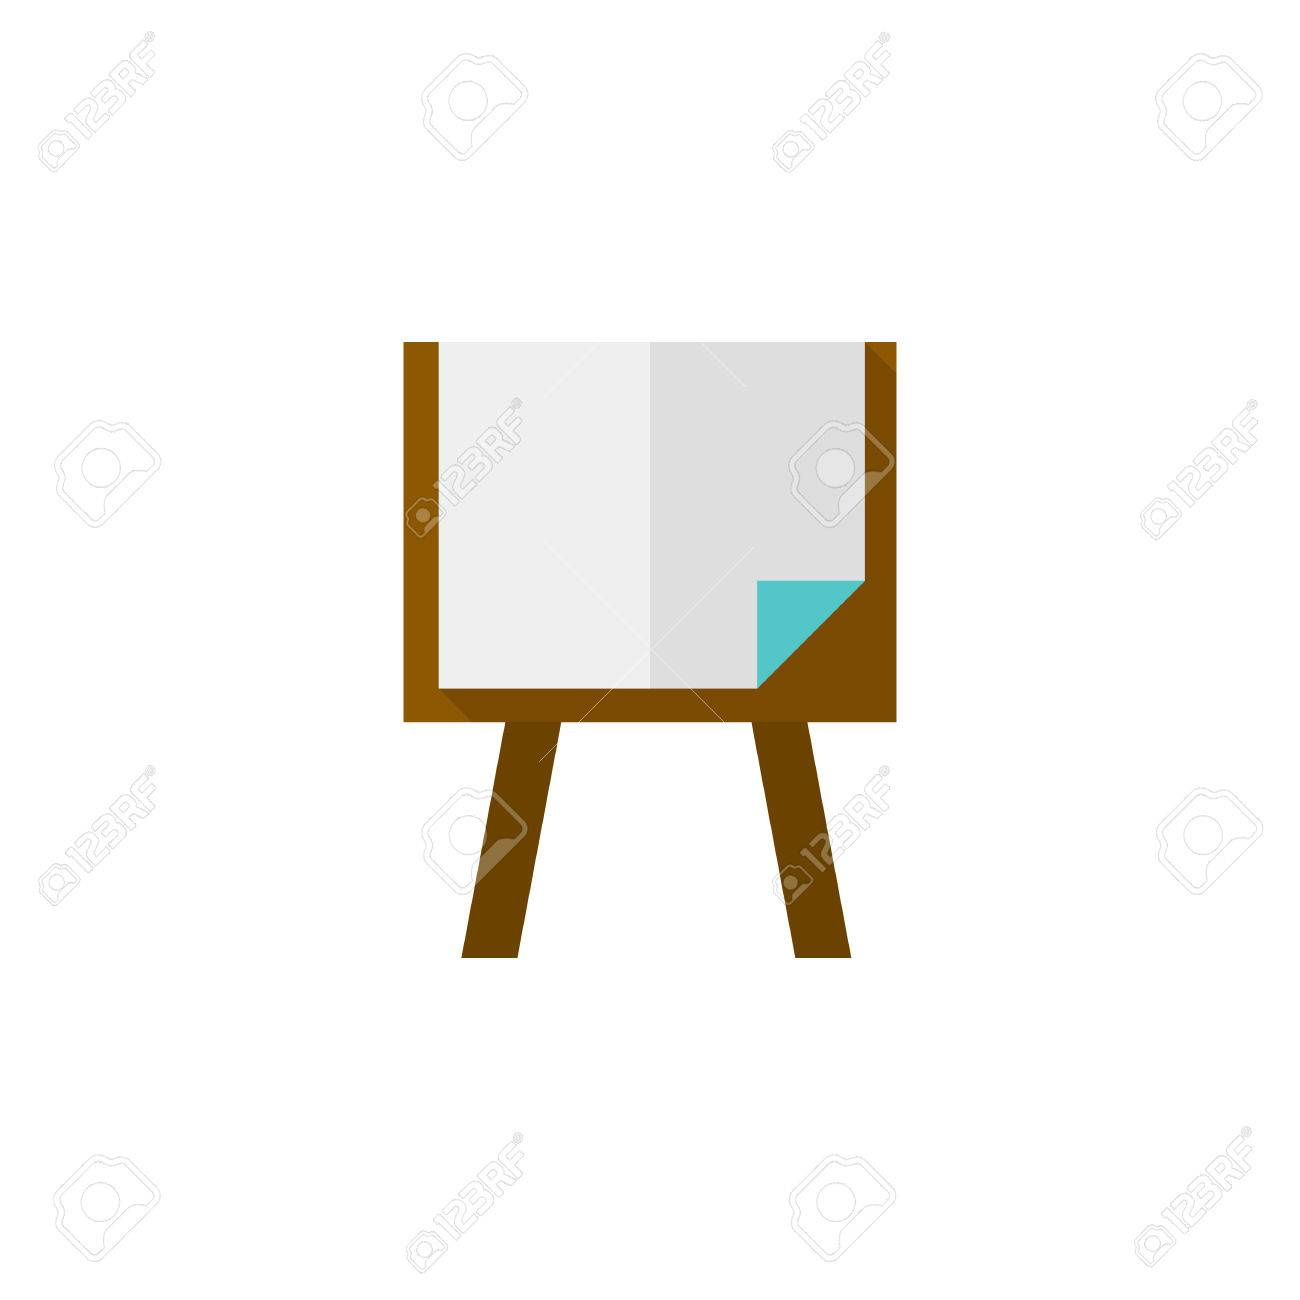 6df3bac985da9 Painting Stand Icon In Flat Color Style. Royalty Free Cliparts ...